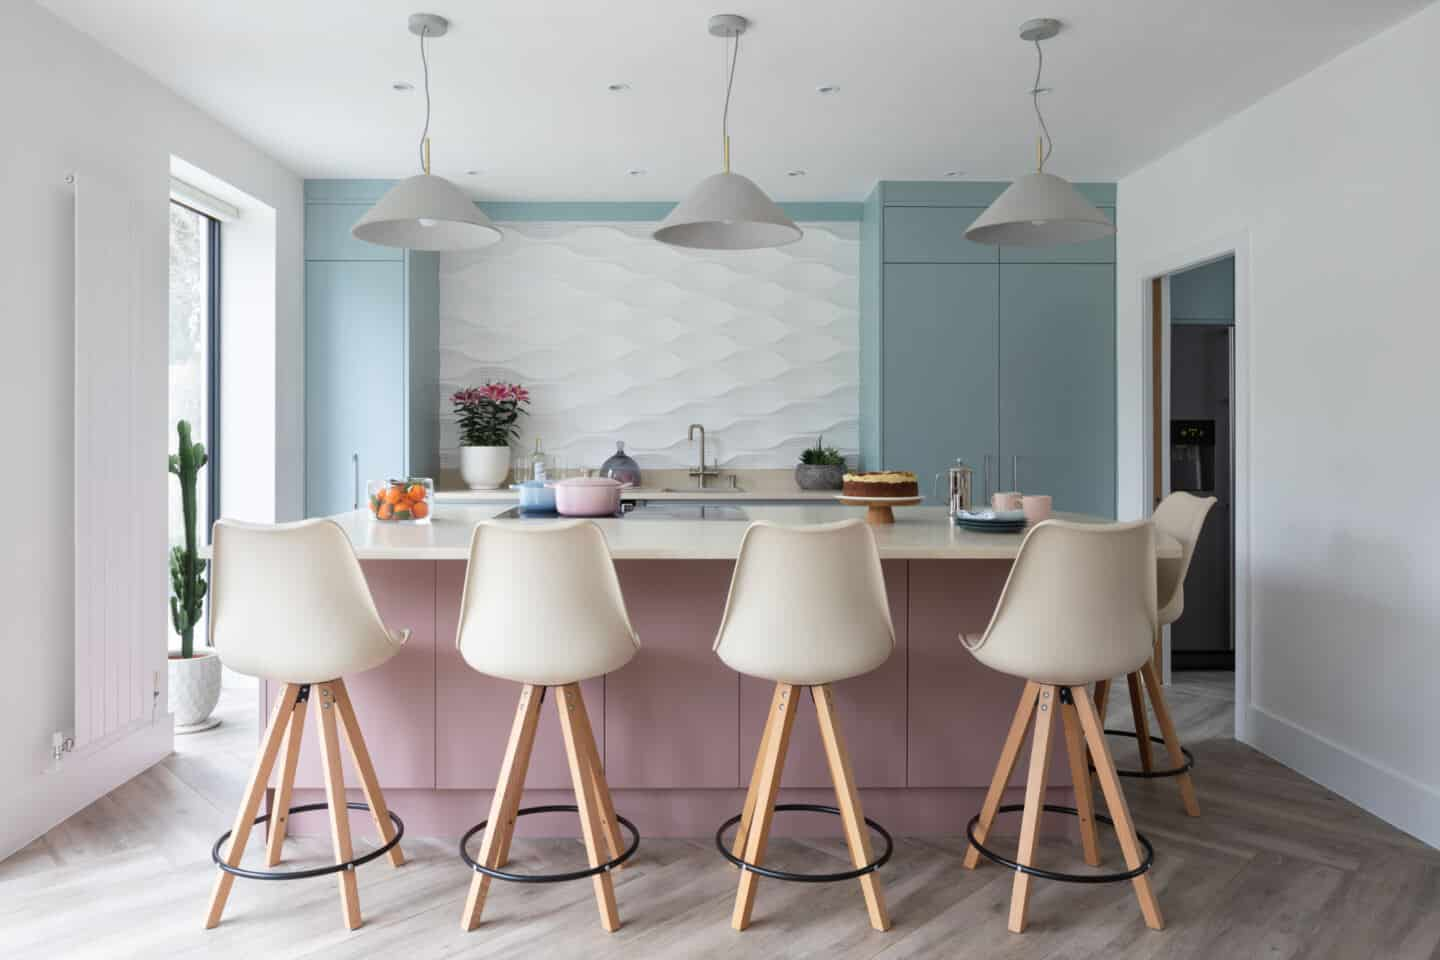 How to get your dream kitchen on a budget. Dusky rose and baby blue pre-loved kitchen from Used Kitchen Exchange